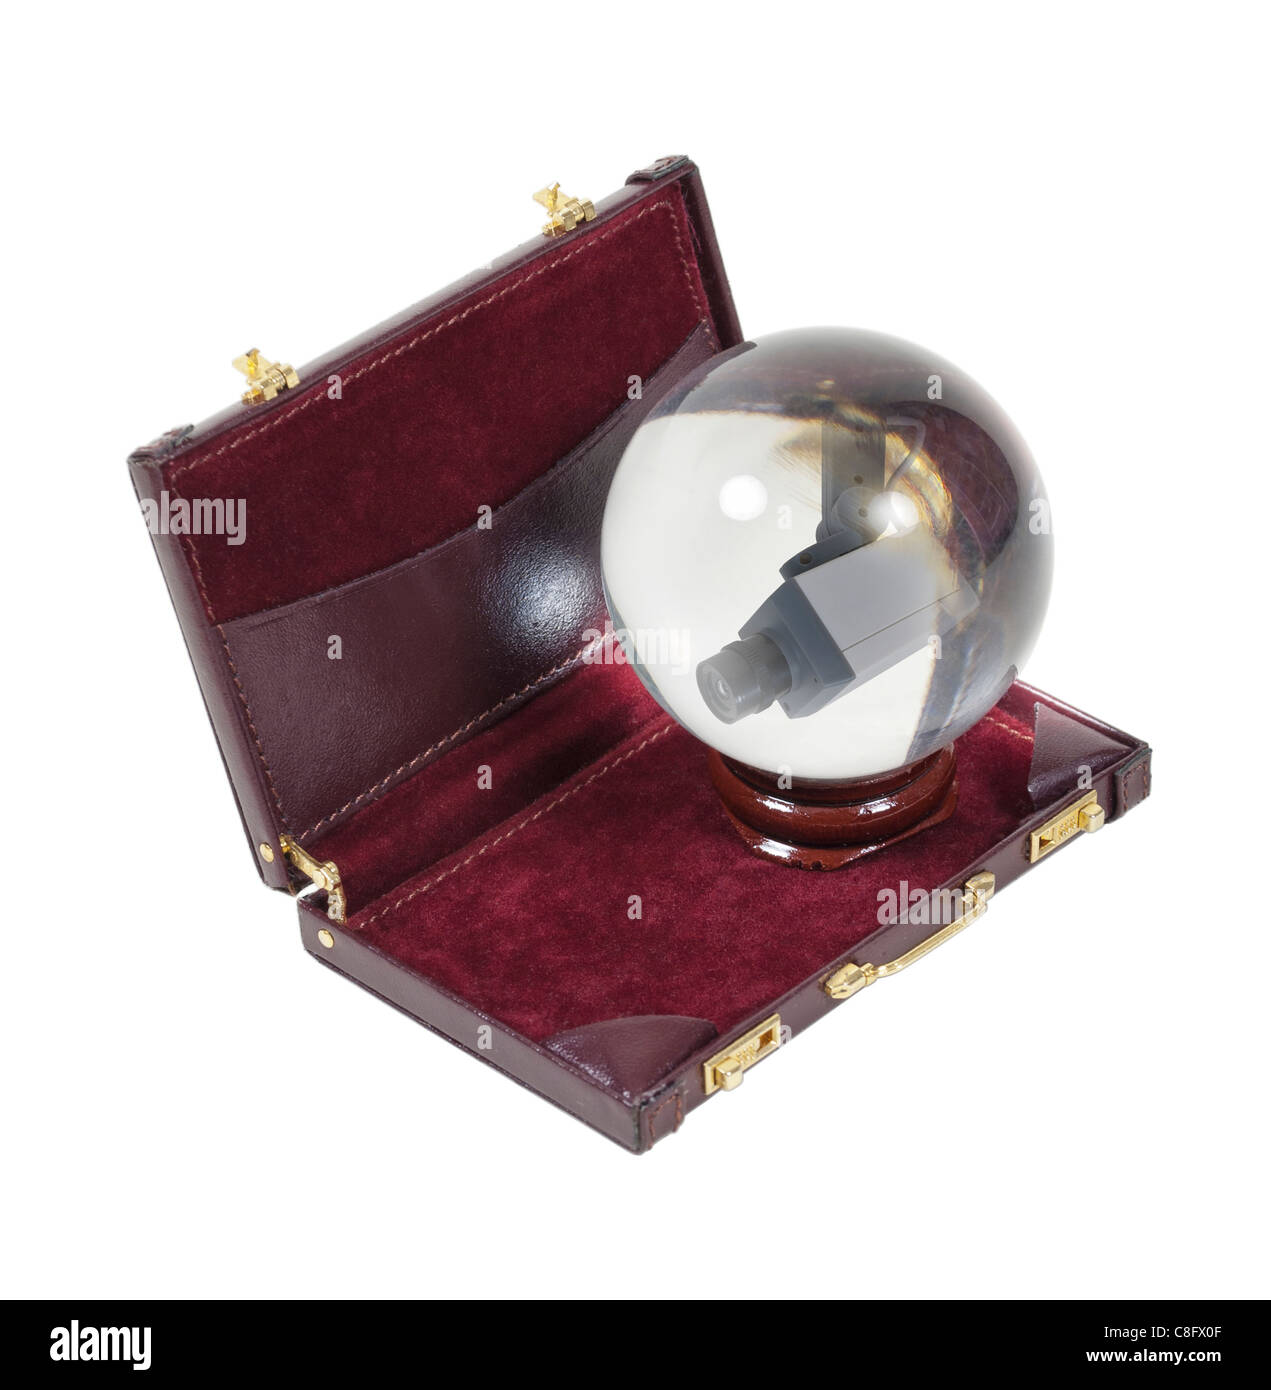 Predicting secure business shown by a security camera in a crystal ball in a briefcase - path included - Stock Image